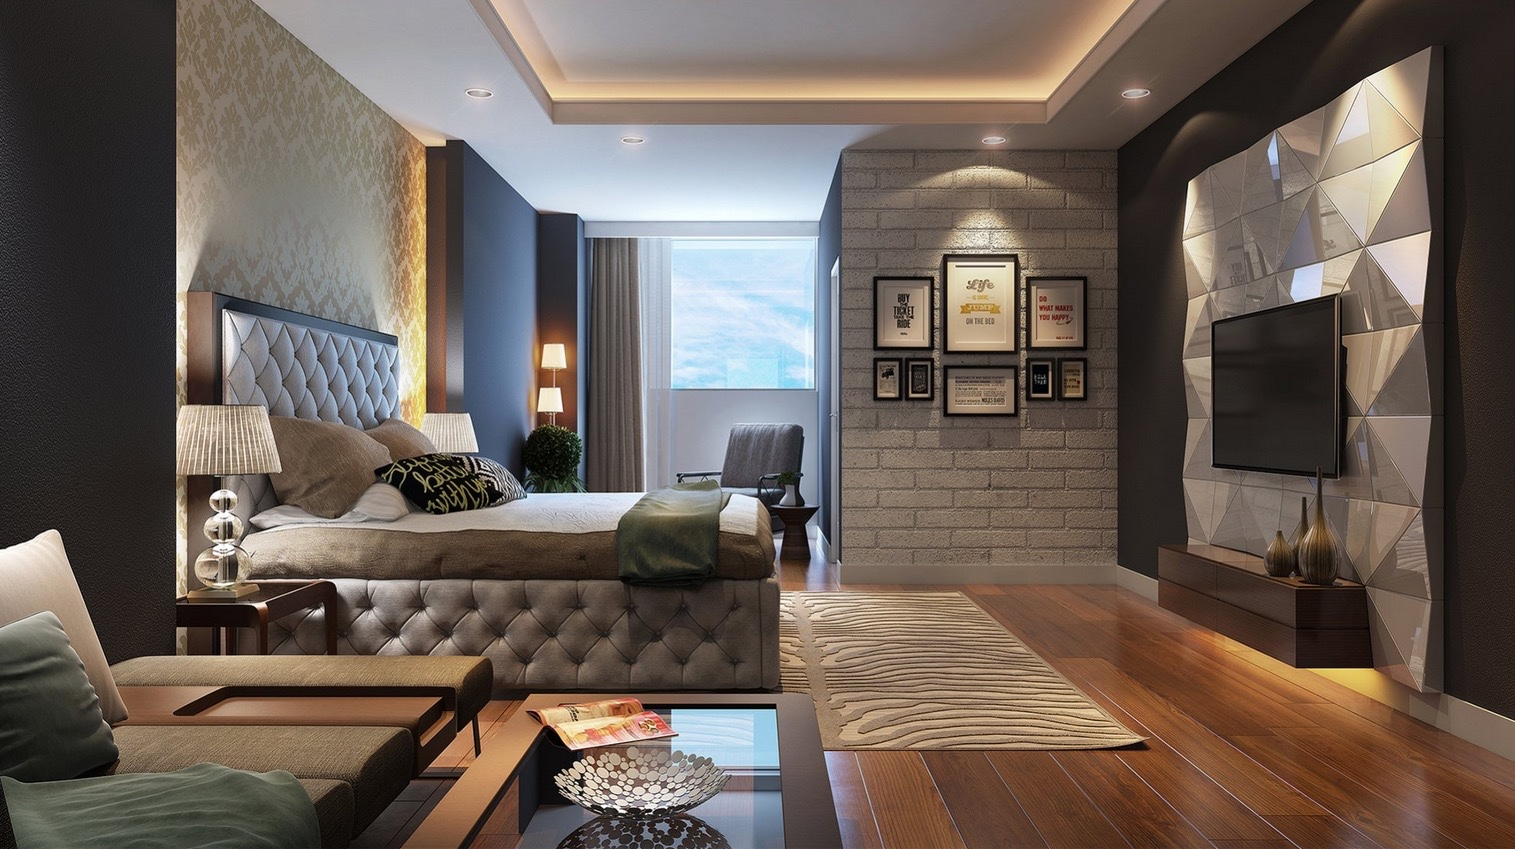 cool tones and soft textures still make this bedroom quite inviting